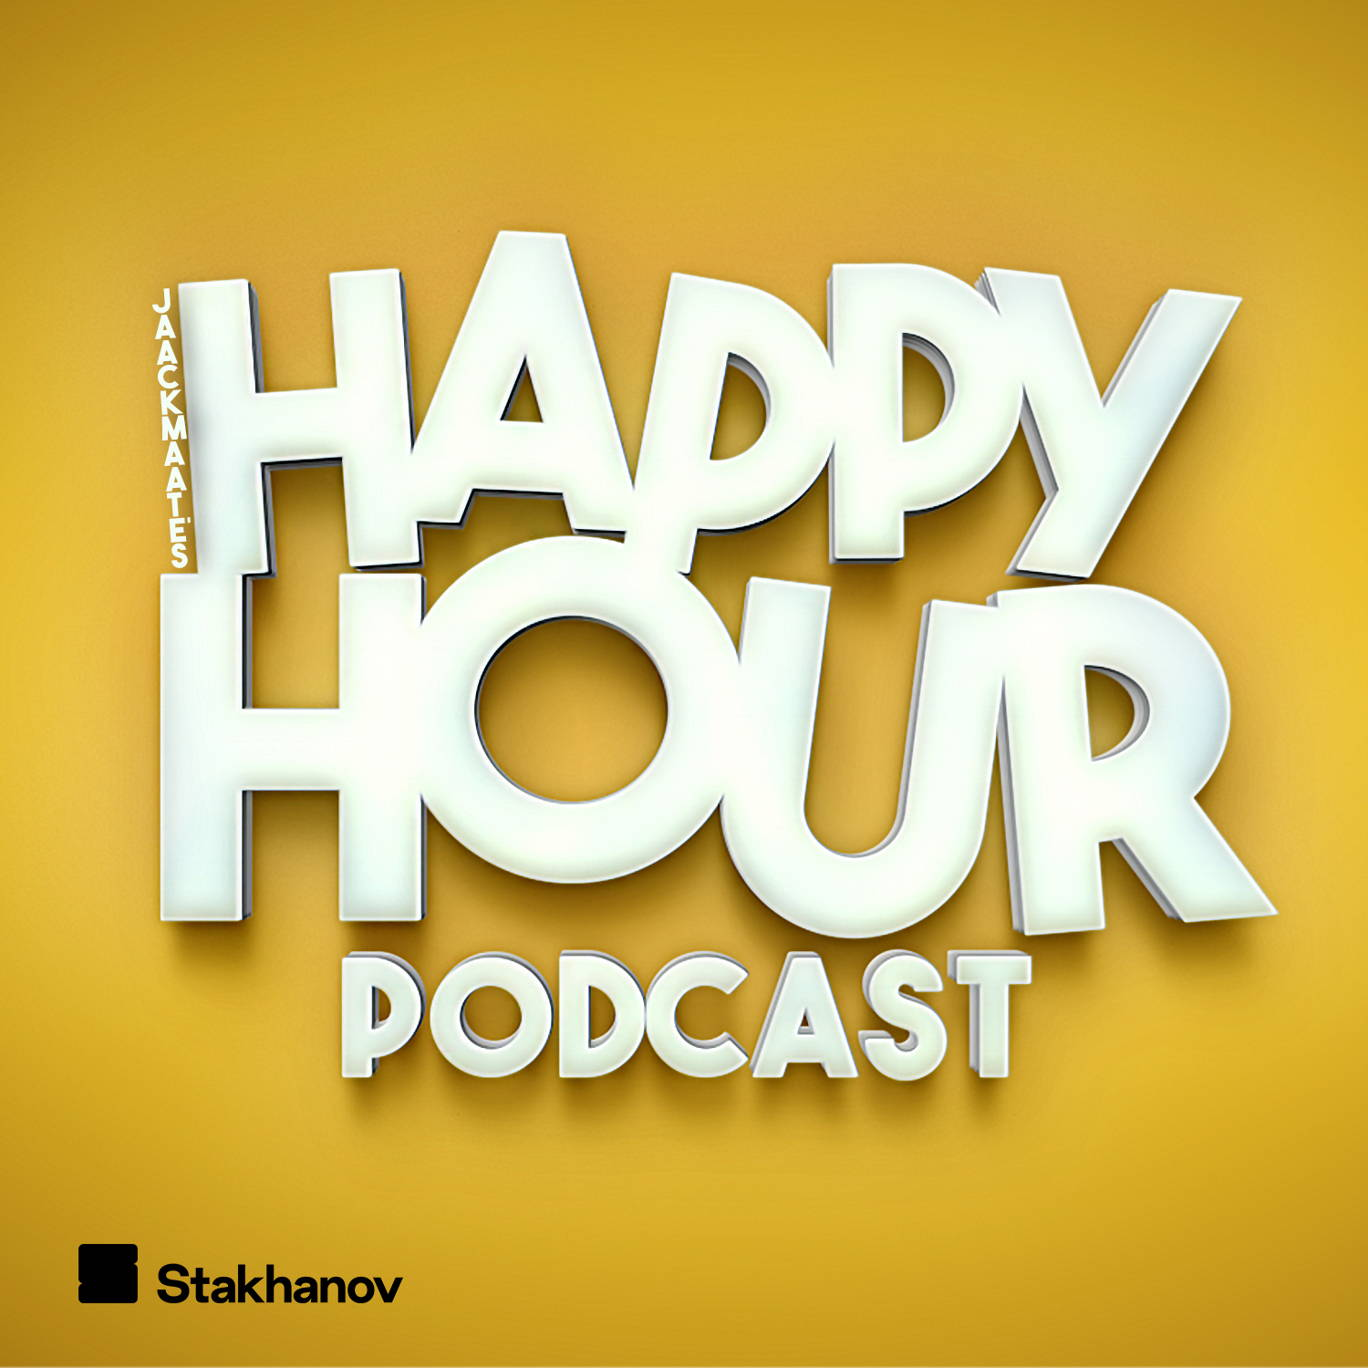 The artwork for the JaackMaate's Happy Hour podcast.